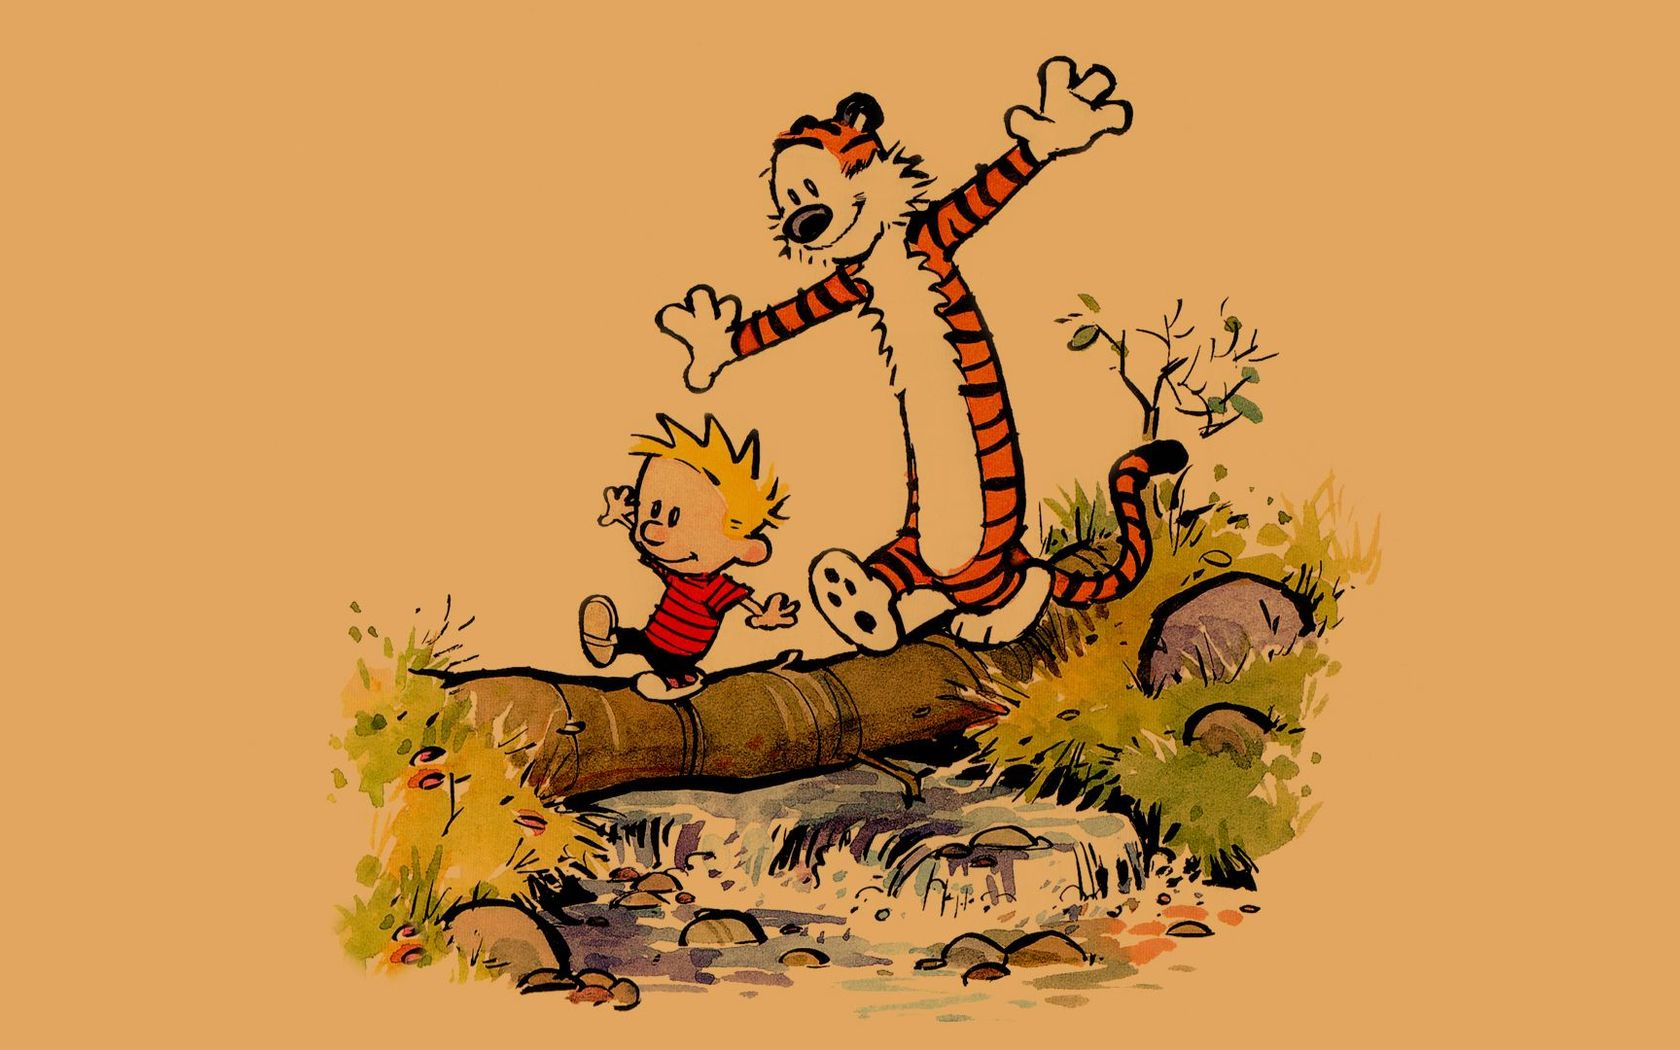 Calvin and Hobbes wallpaper 17987 1680x1050